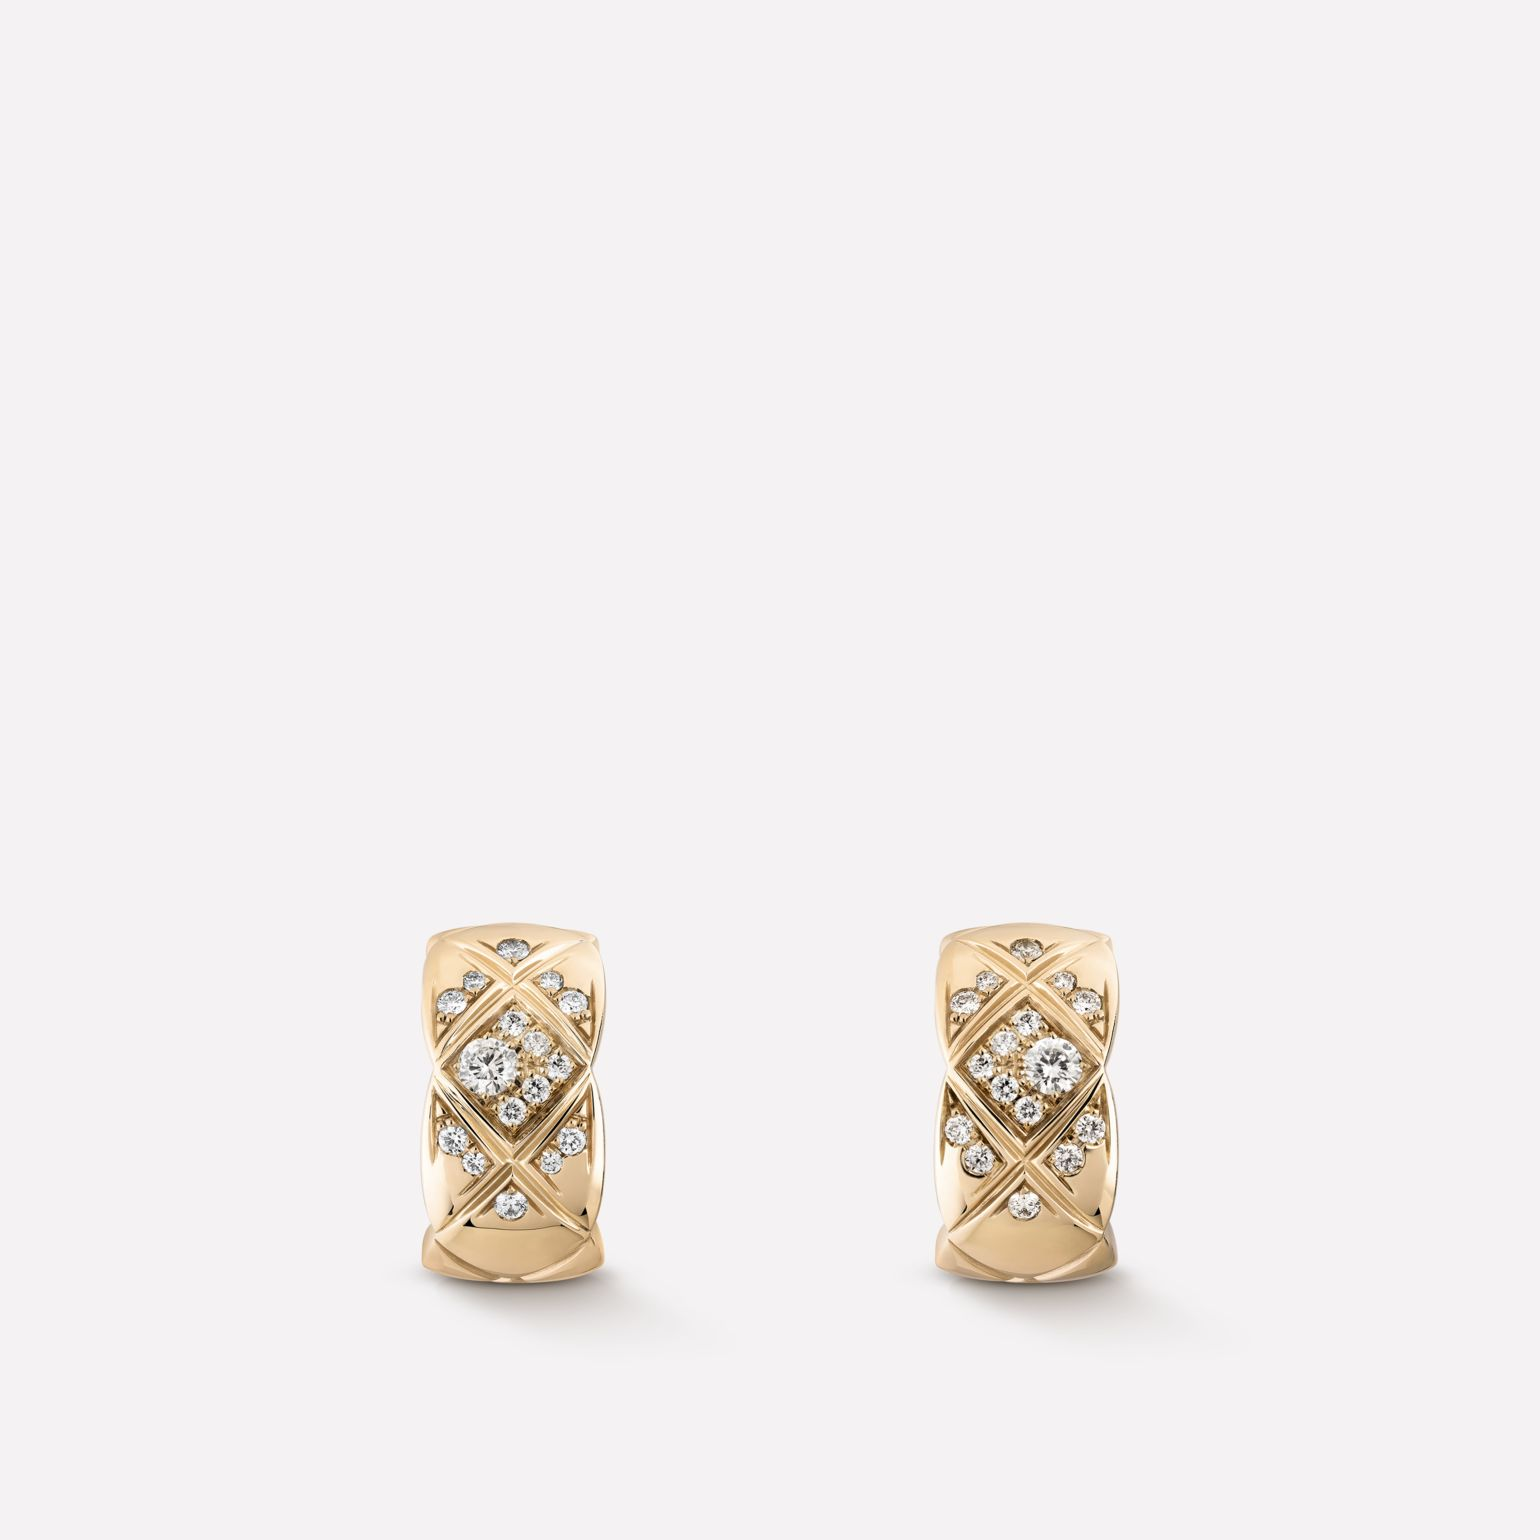 Boucles d'oreilles Coco Crush Motif matelassé, OR BEIGE 18 carats, diamants